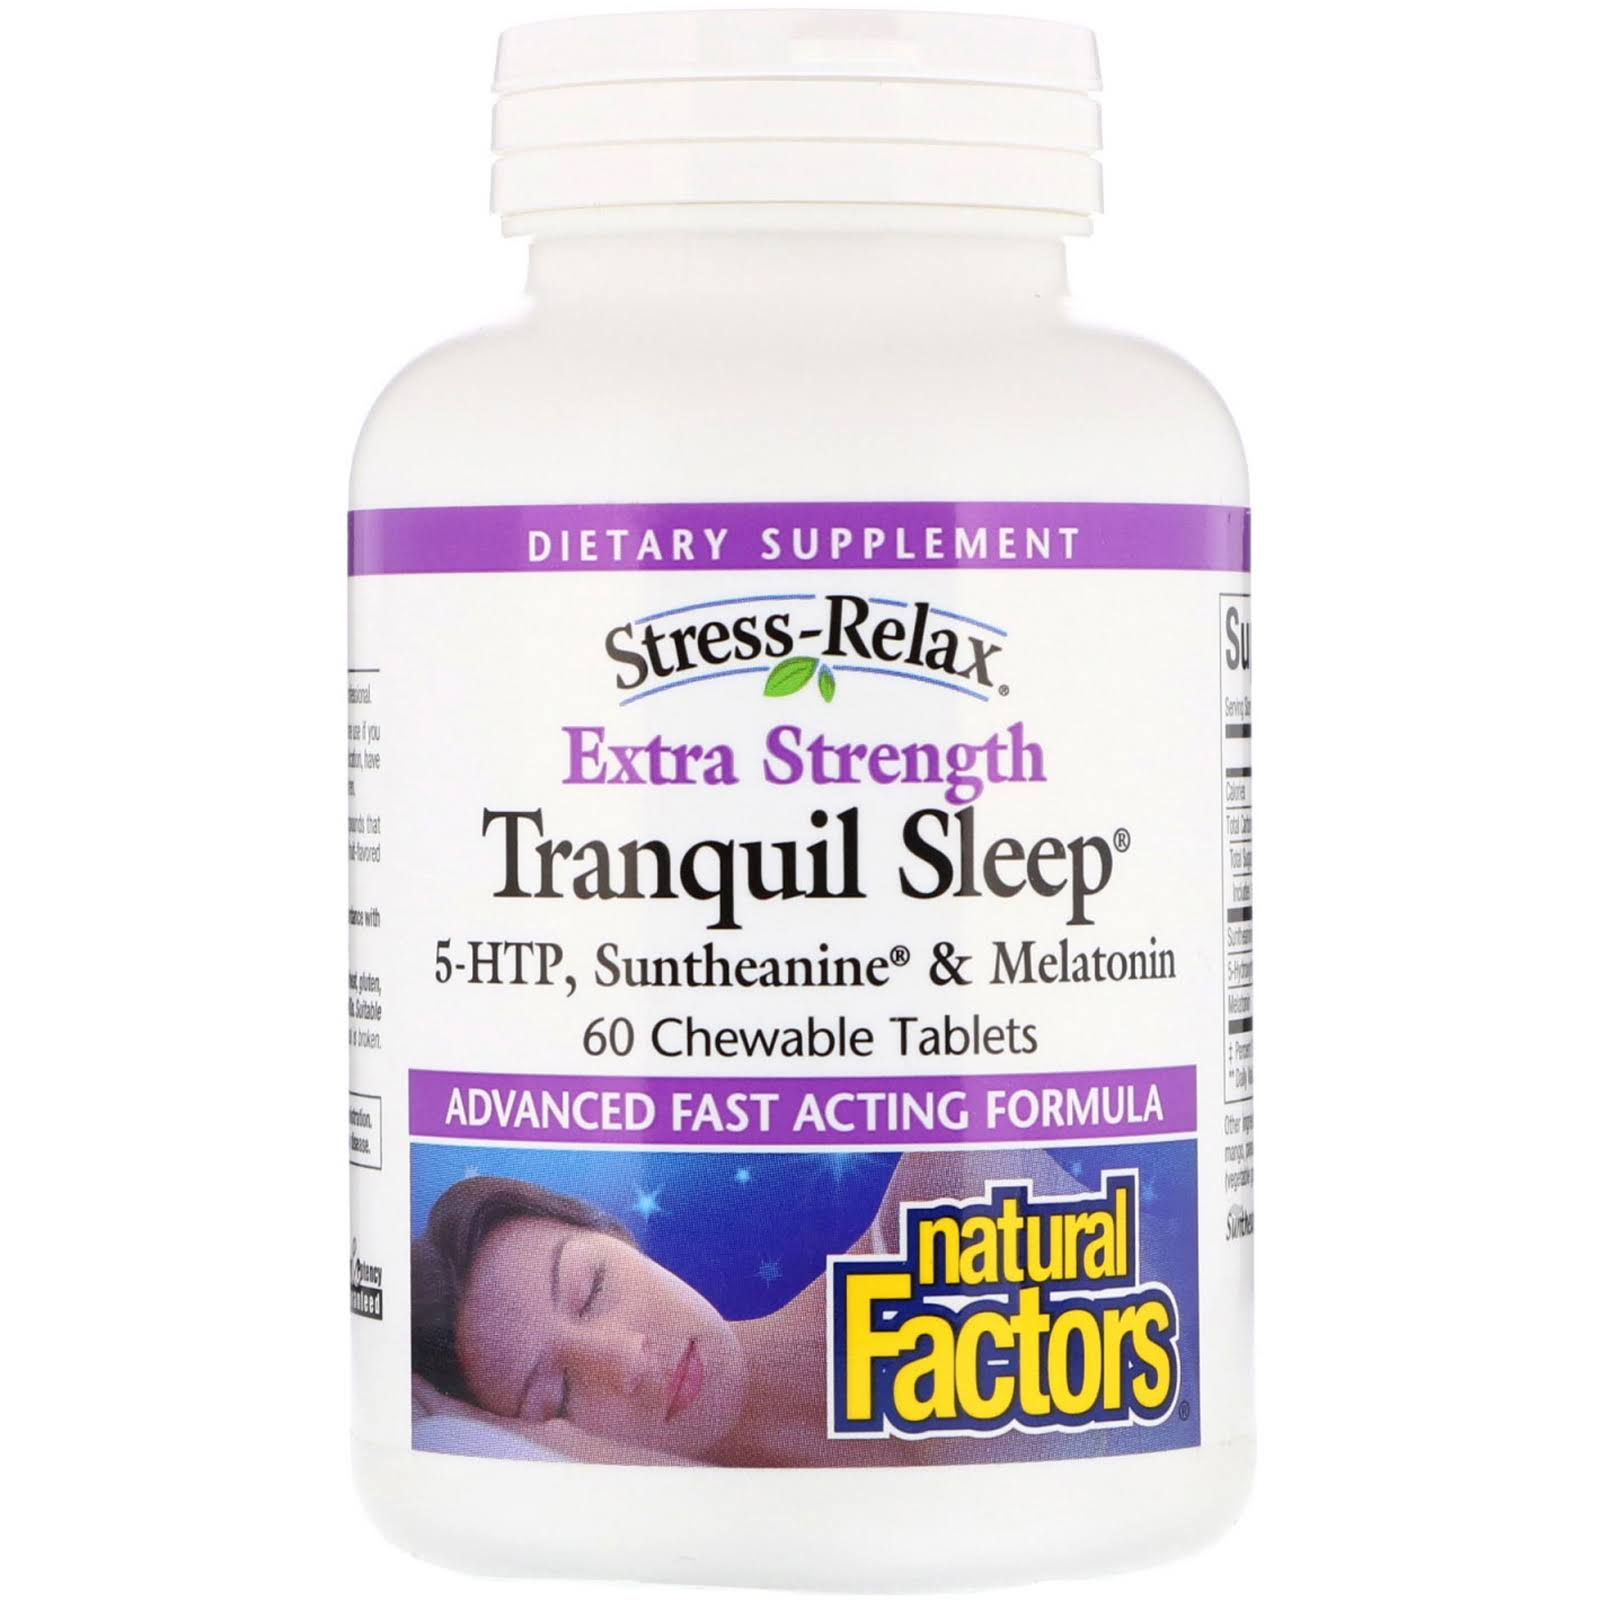 Natural Factors Tranquil Sleep Extra Strength Dietary Supplement - 60 Tablets